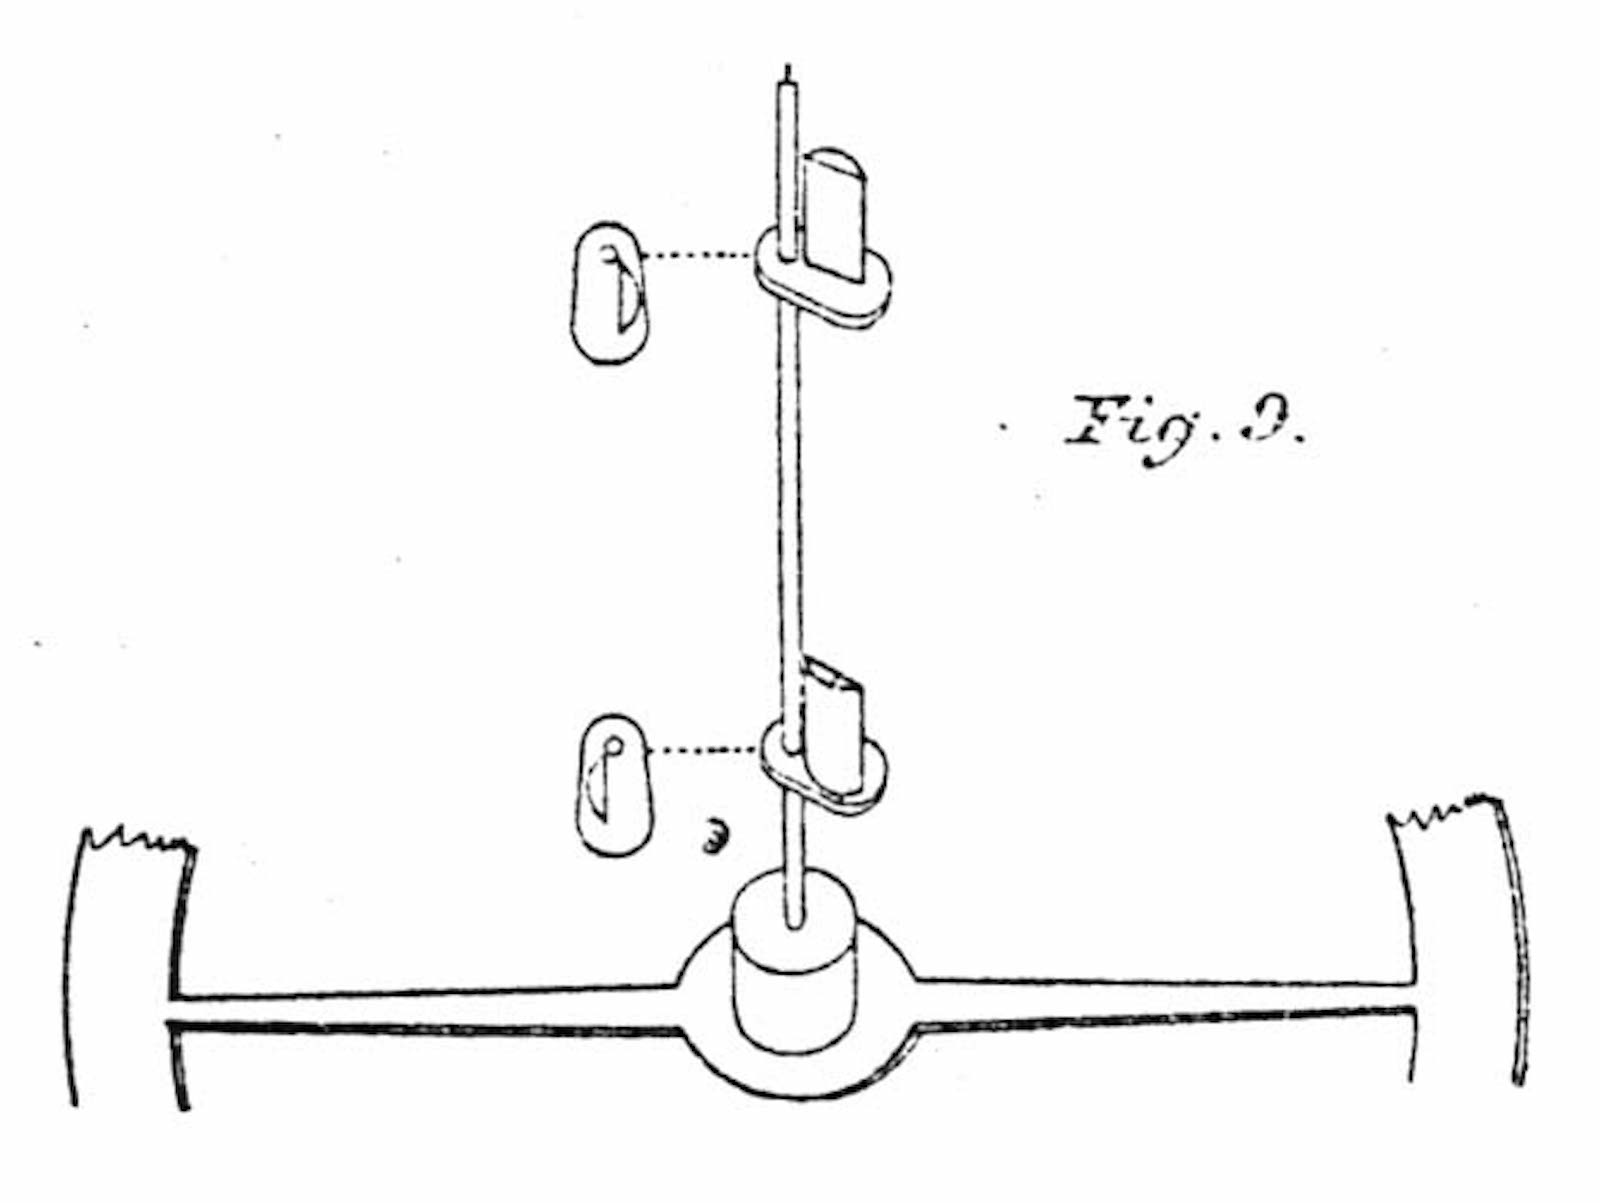 harrison h4 diagram 6